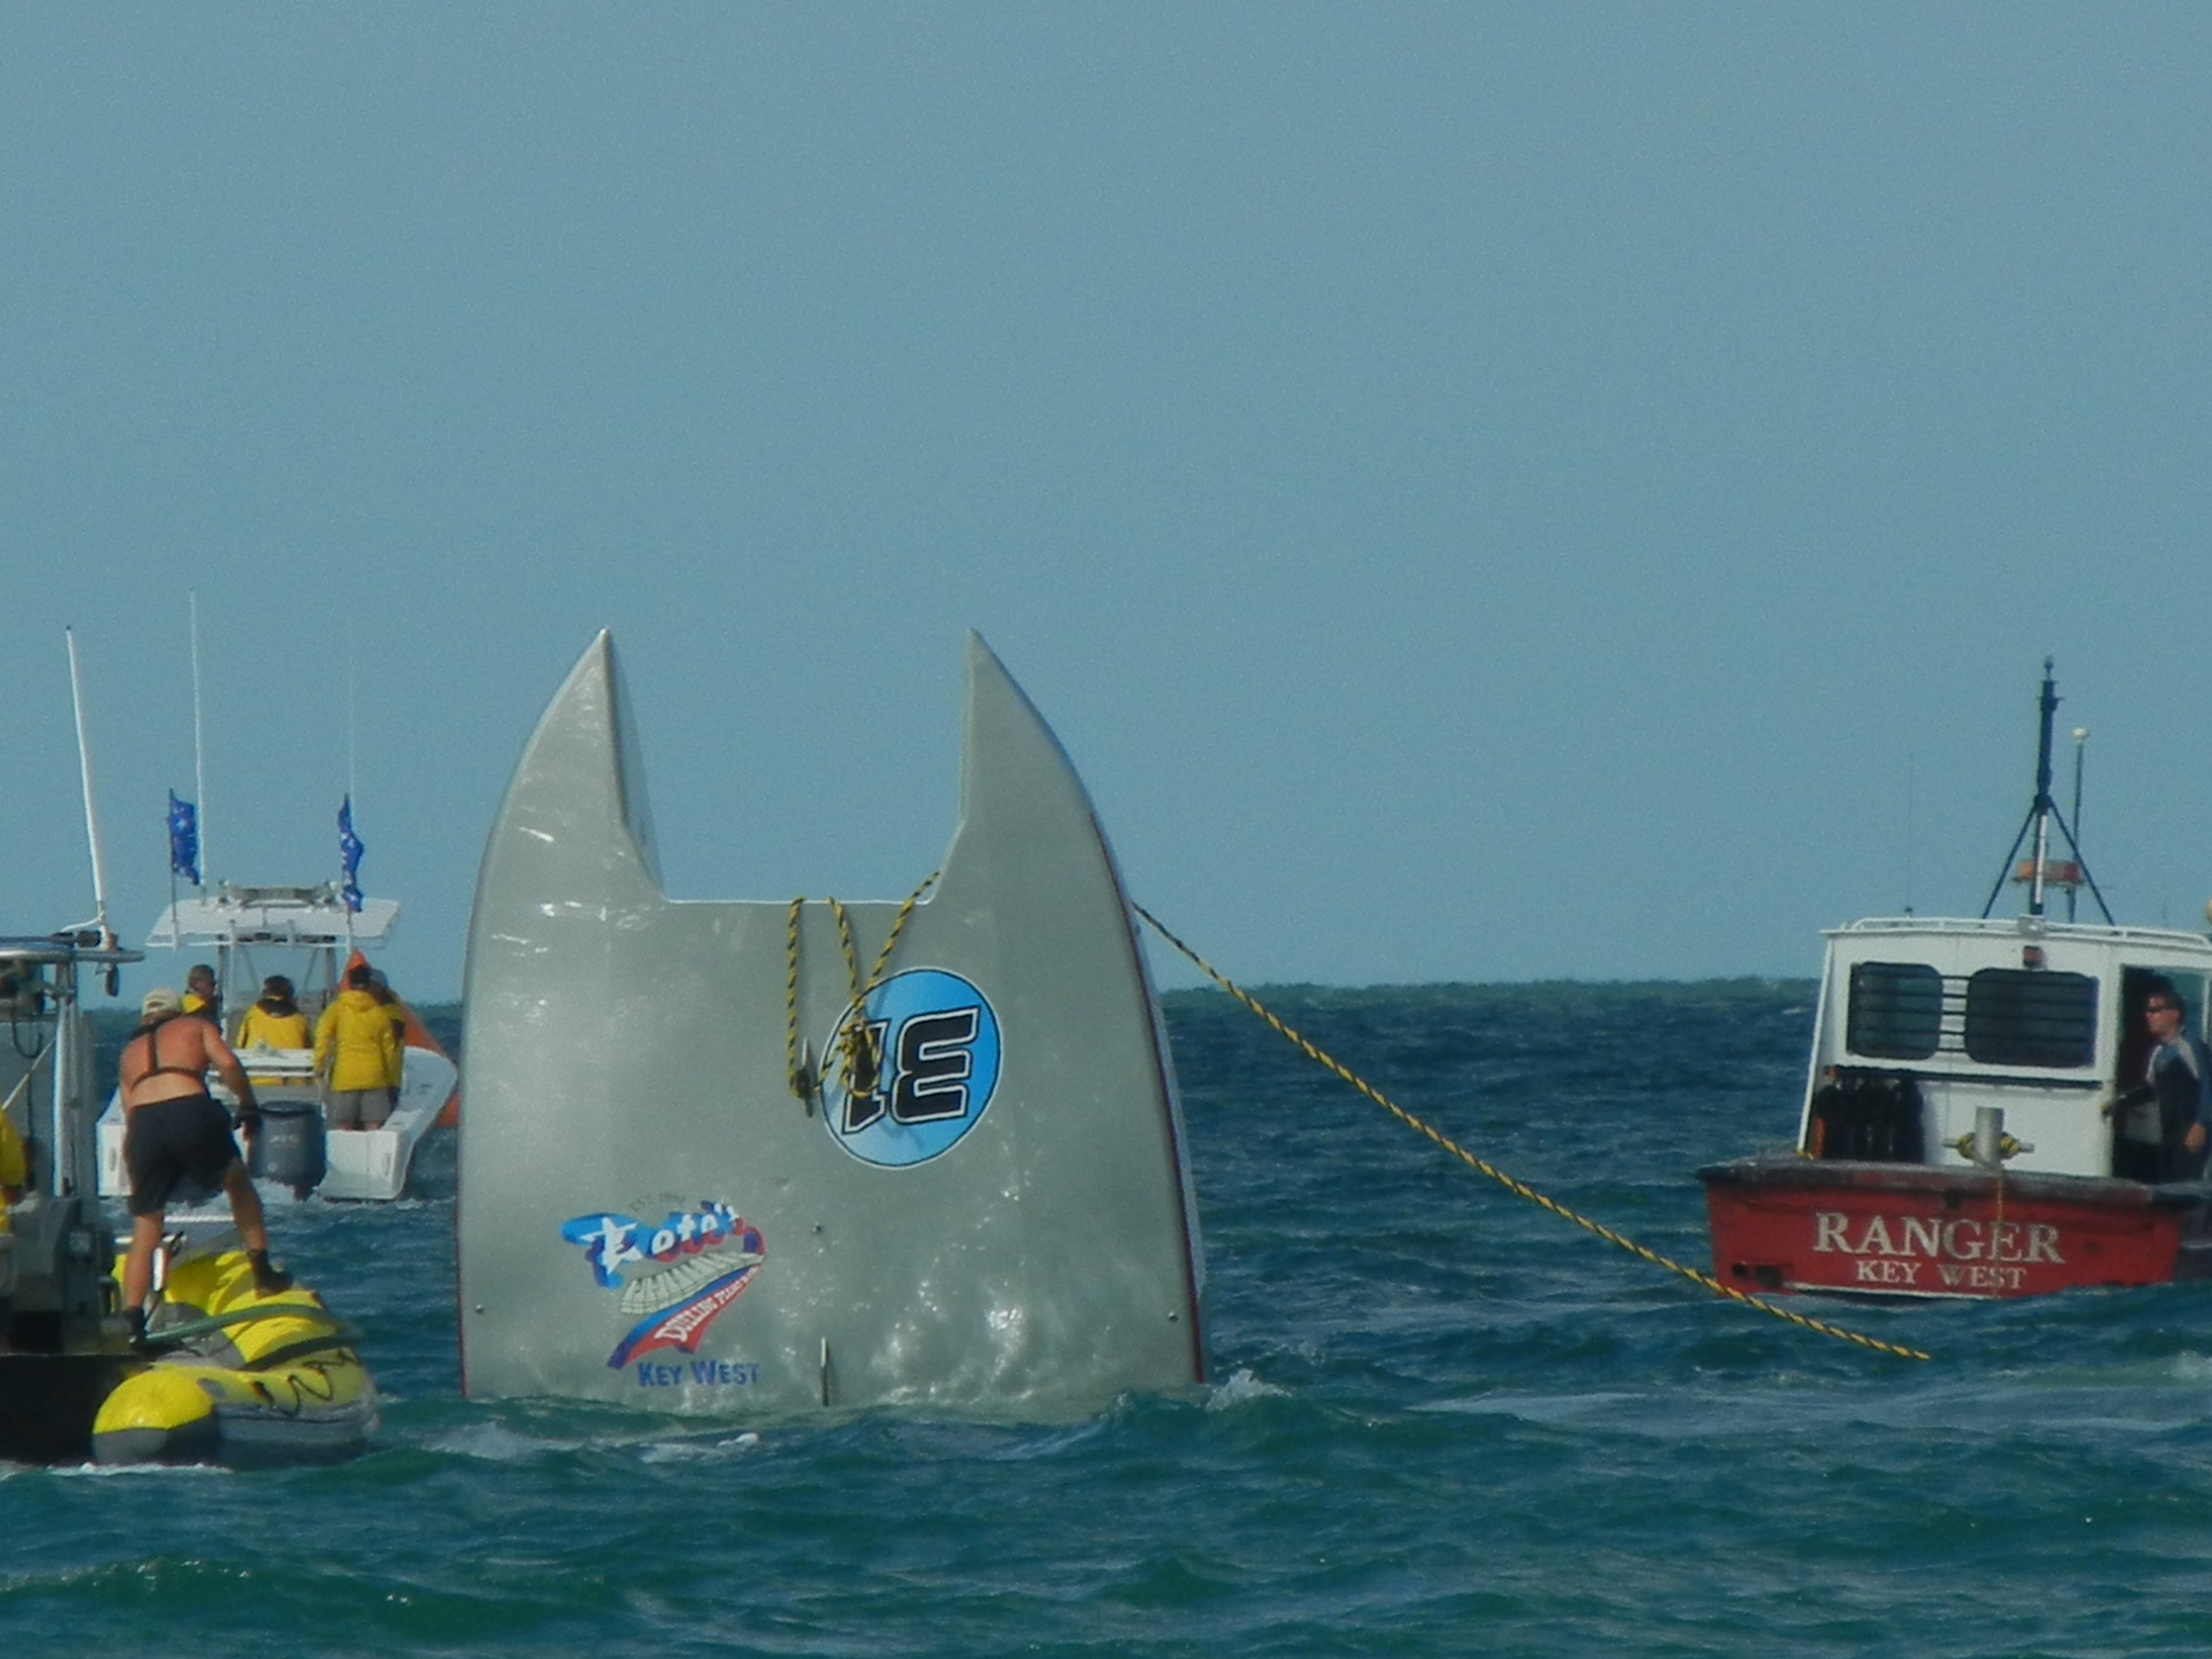 Salvage workers attempt to recover the Page Motorsports catamaran that flipped in the November 2011 SBI World Championships in Key West Harbor. Throttleman Joey Gratton was killed in the wreck.